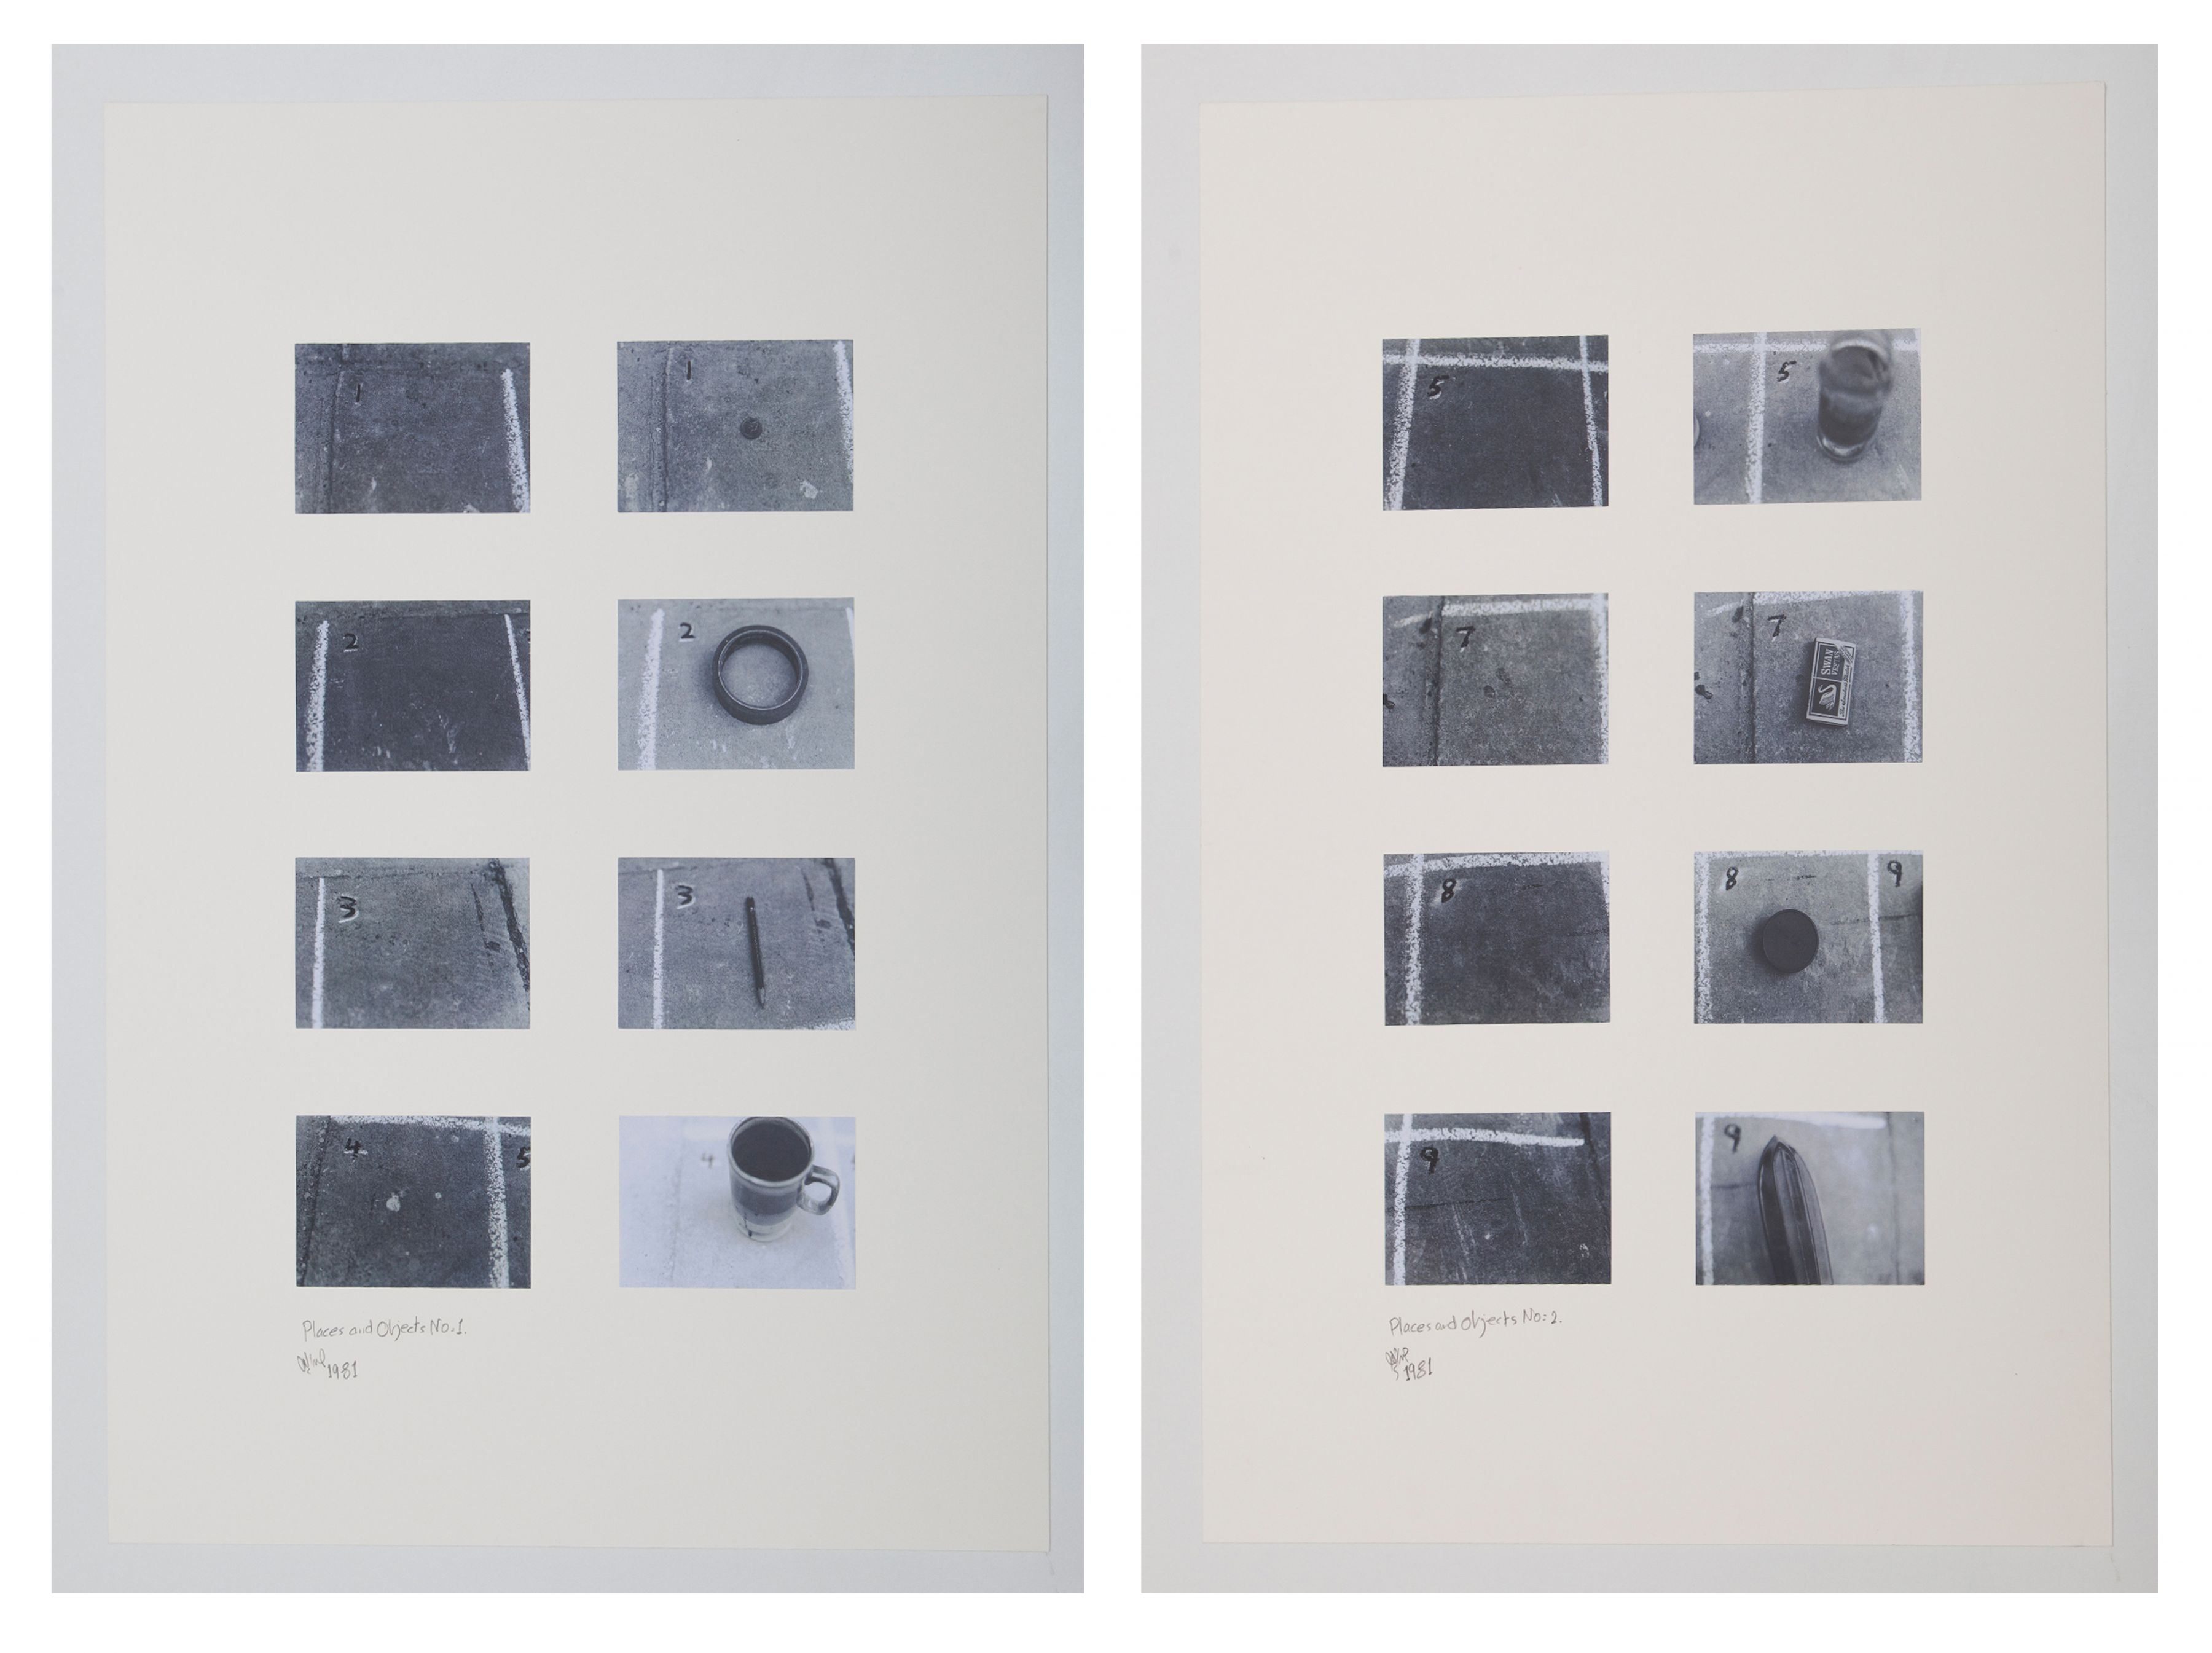 Places and Objects, 1981, Photographs on cardboard